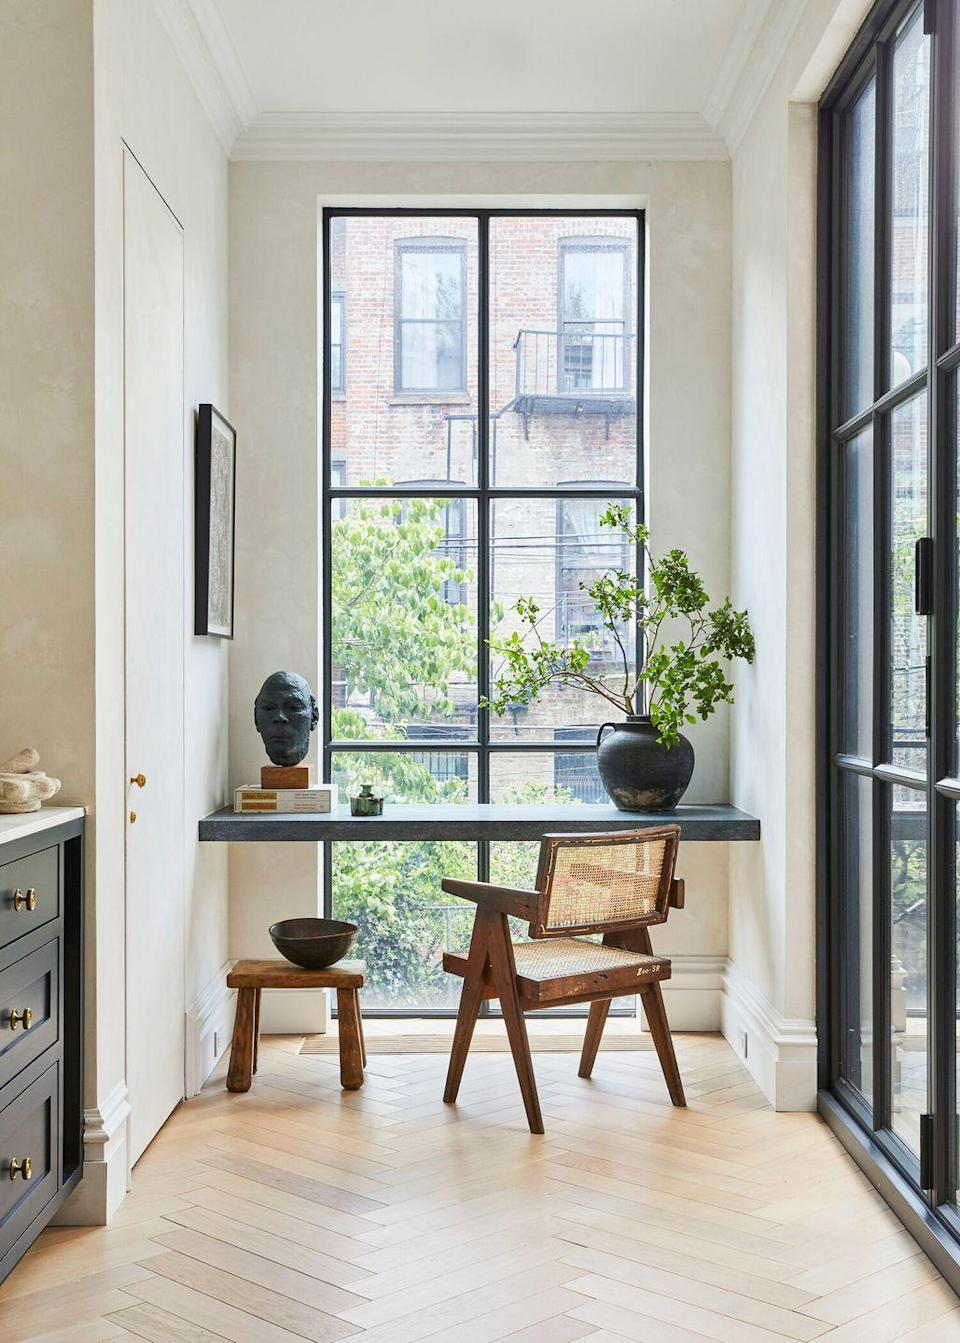 <p>With gorgeous custom steel-frame windows flooding the room with light, it'd be pretty hard not to feel inspired here. If there's a spare nook in a light-filled hallway, kitchen, or mudroom, consider customizing a floating desk for a clean, minimal look that still provides plenty of space to spread out and hunker down. </p>